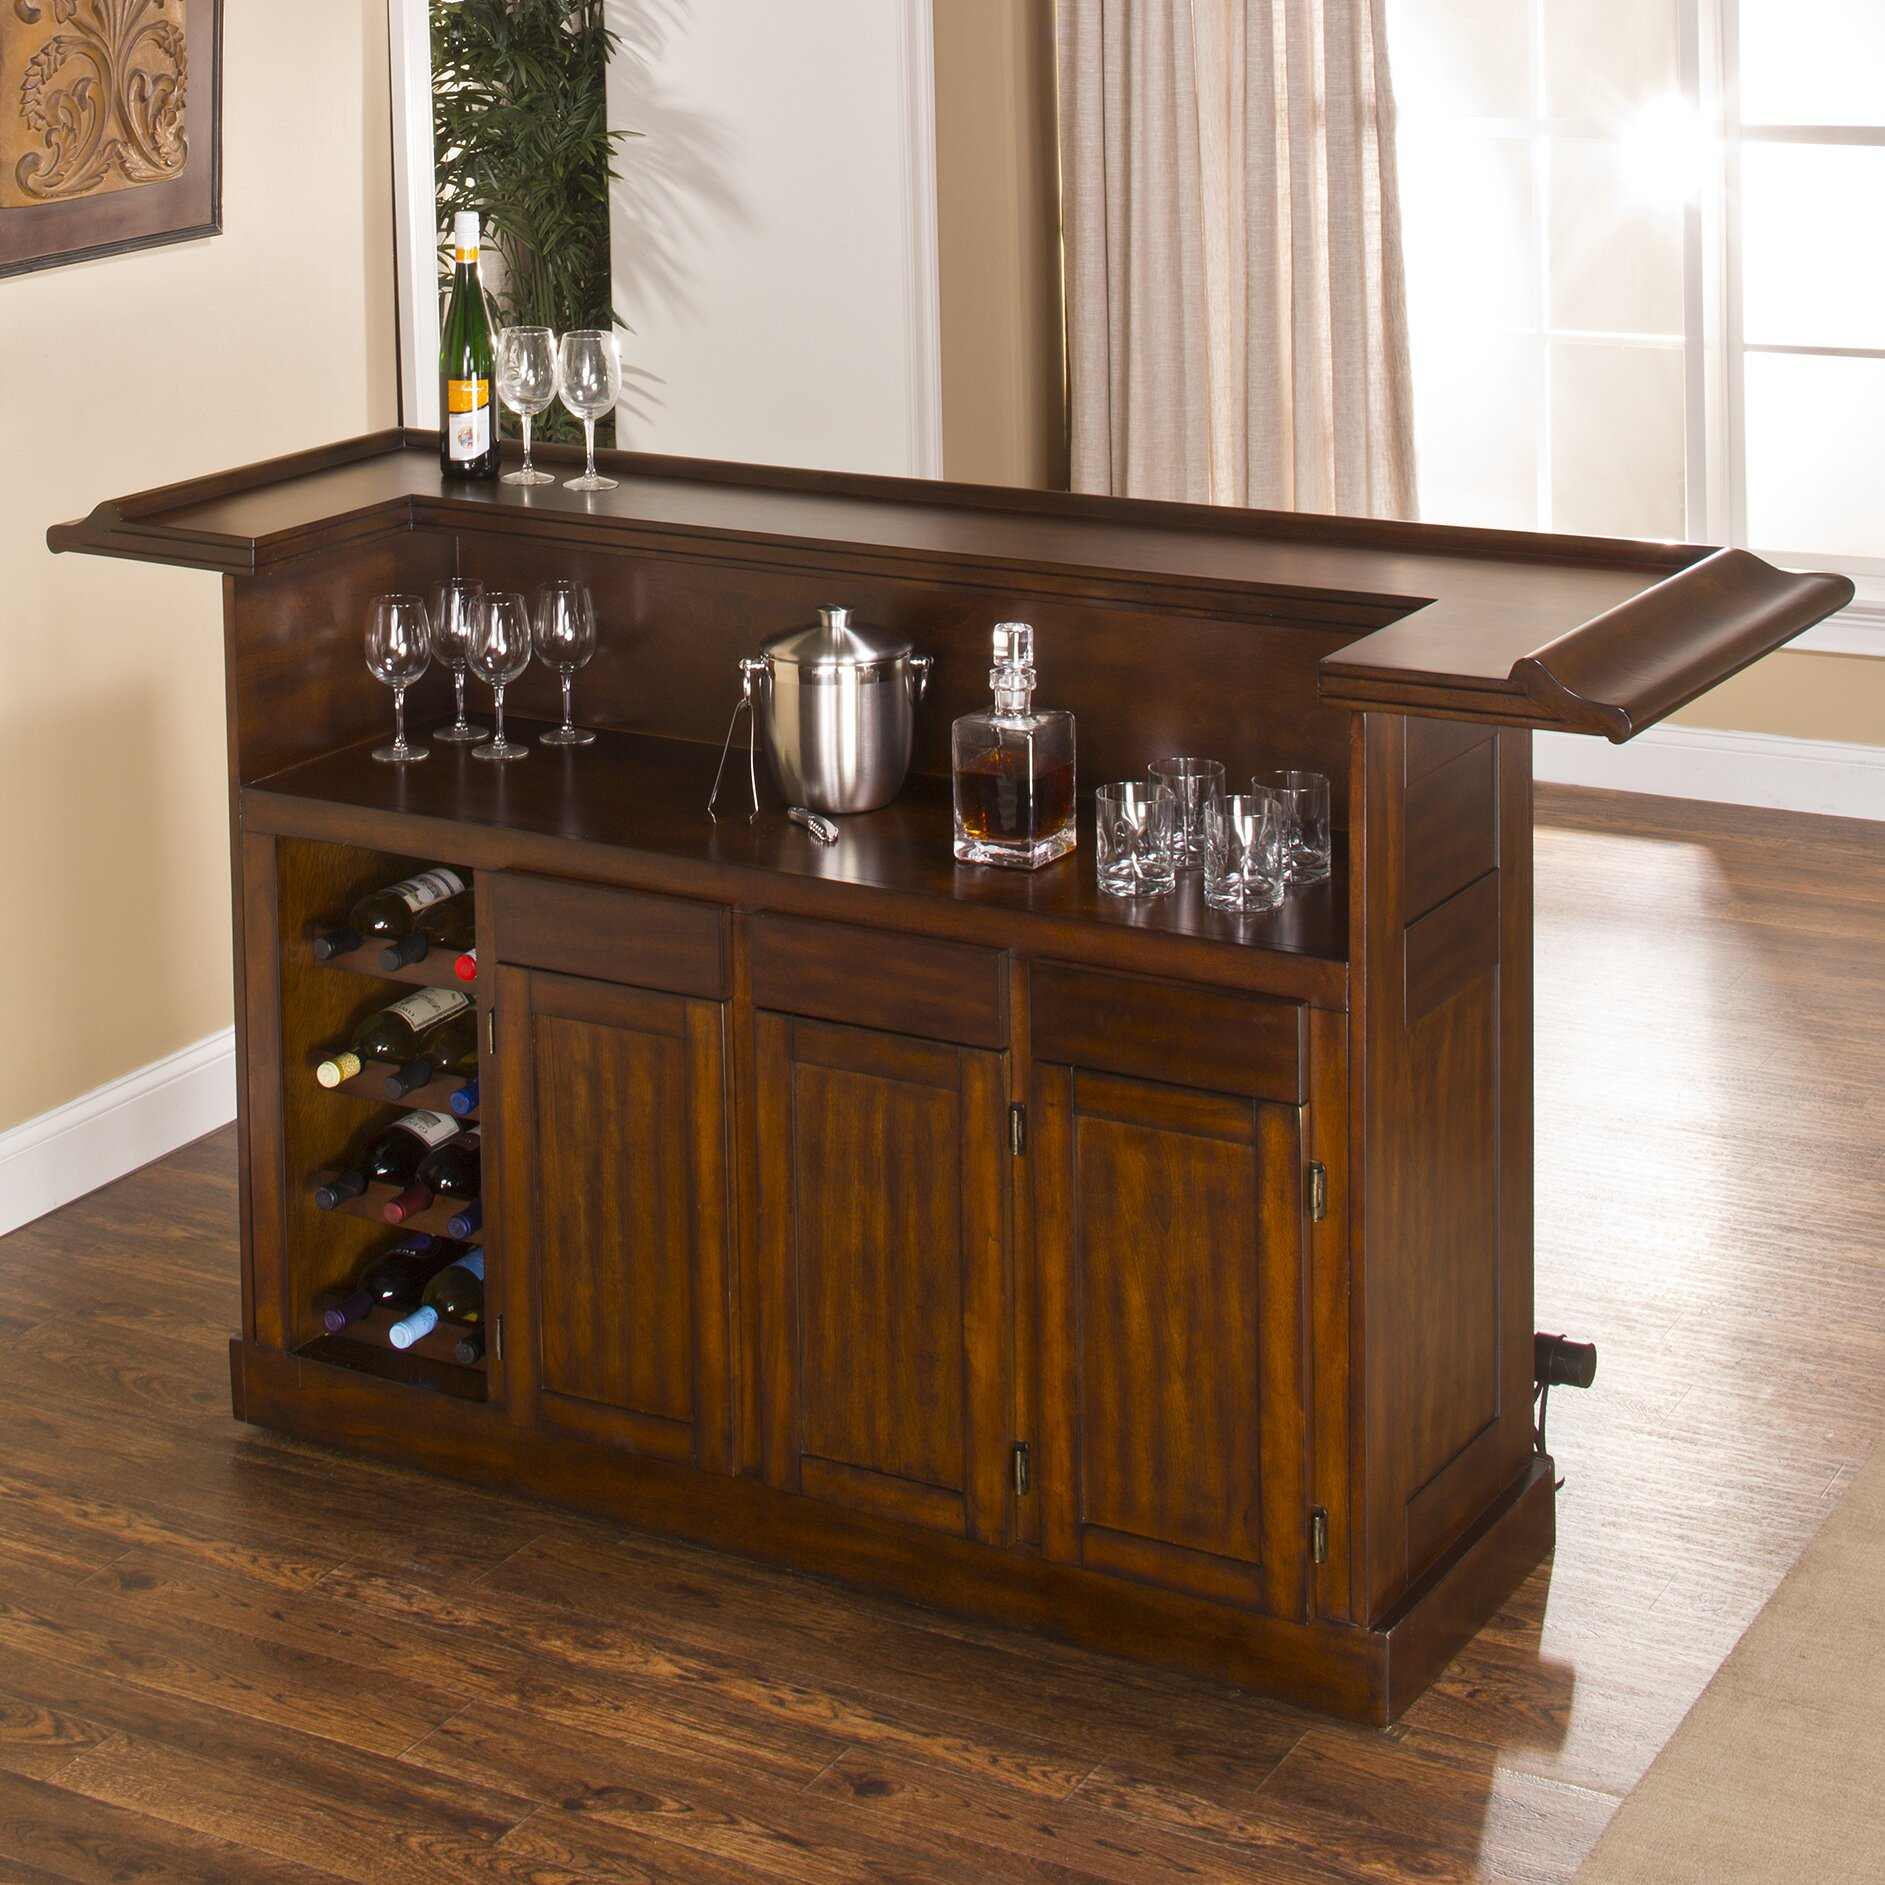 Darby Home Co Danton Bar With Wine Storage Reviews Wayfair